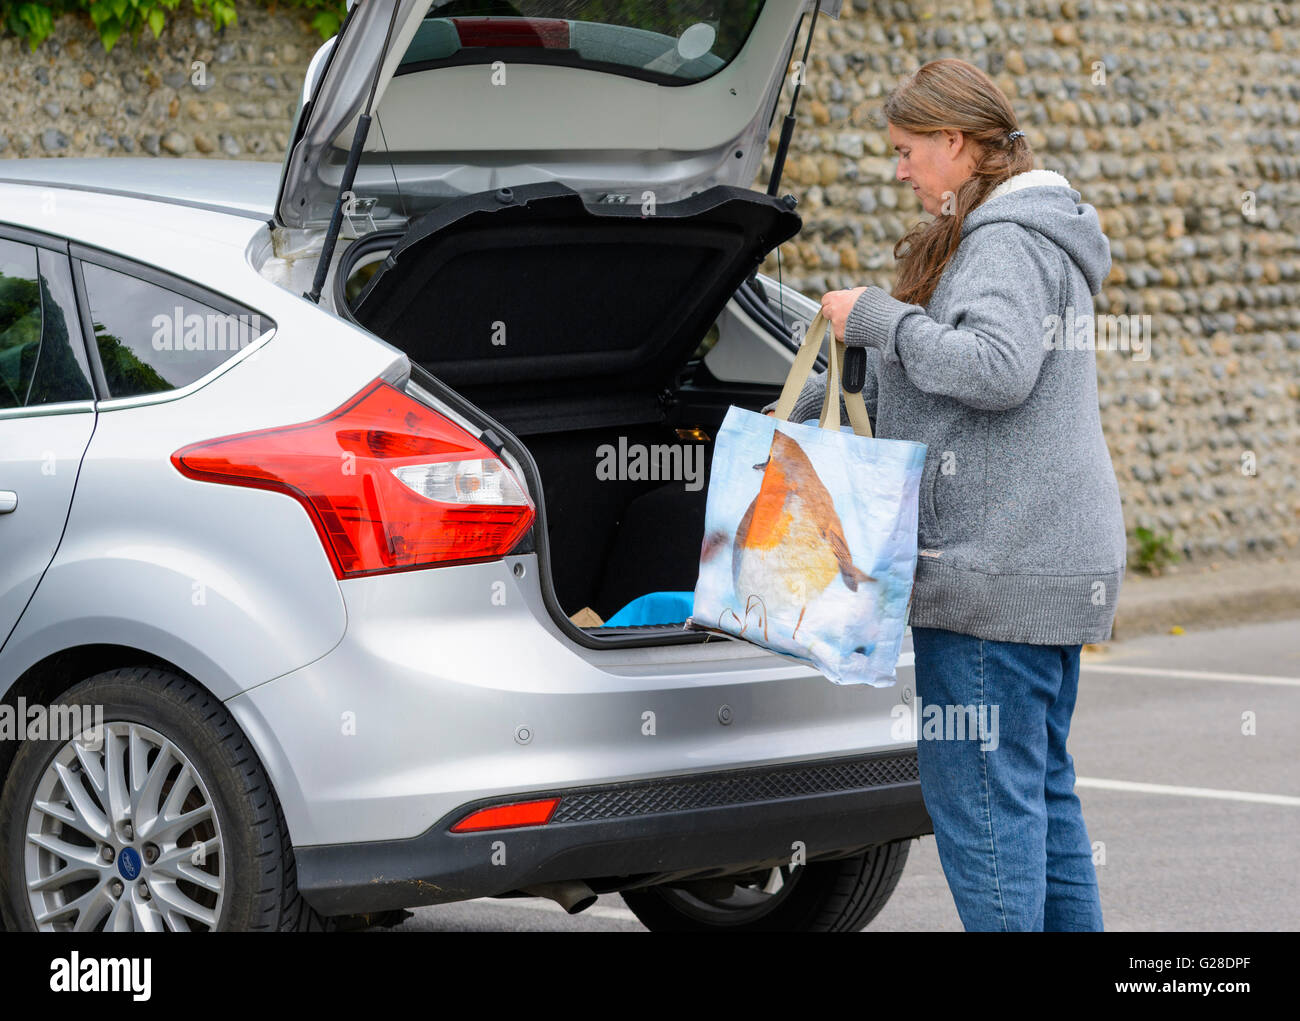 Middle aged woman loading up car with shopping. - Stock Image